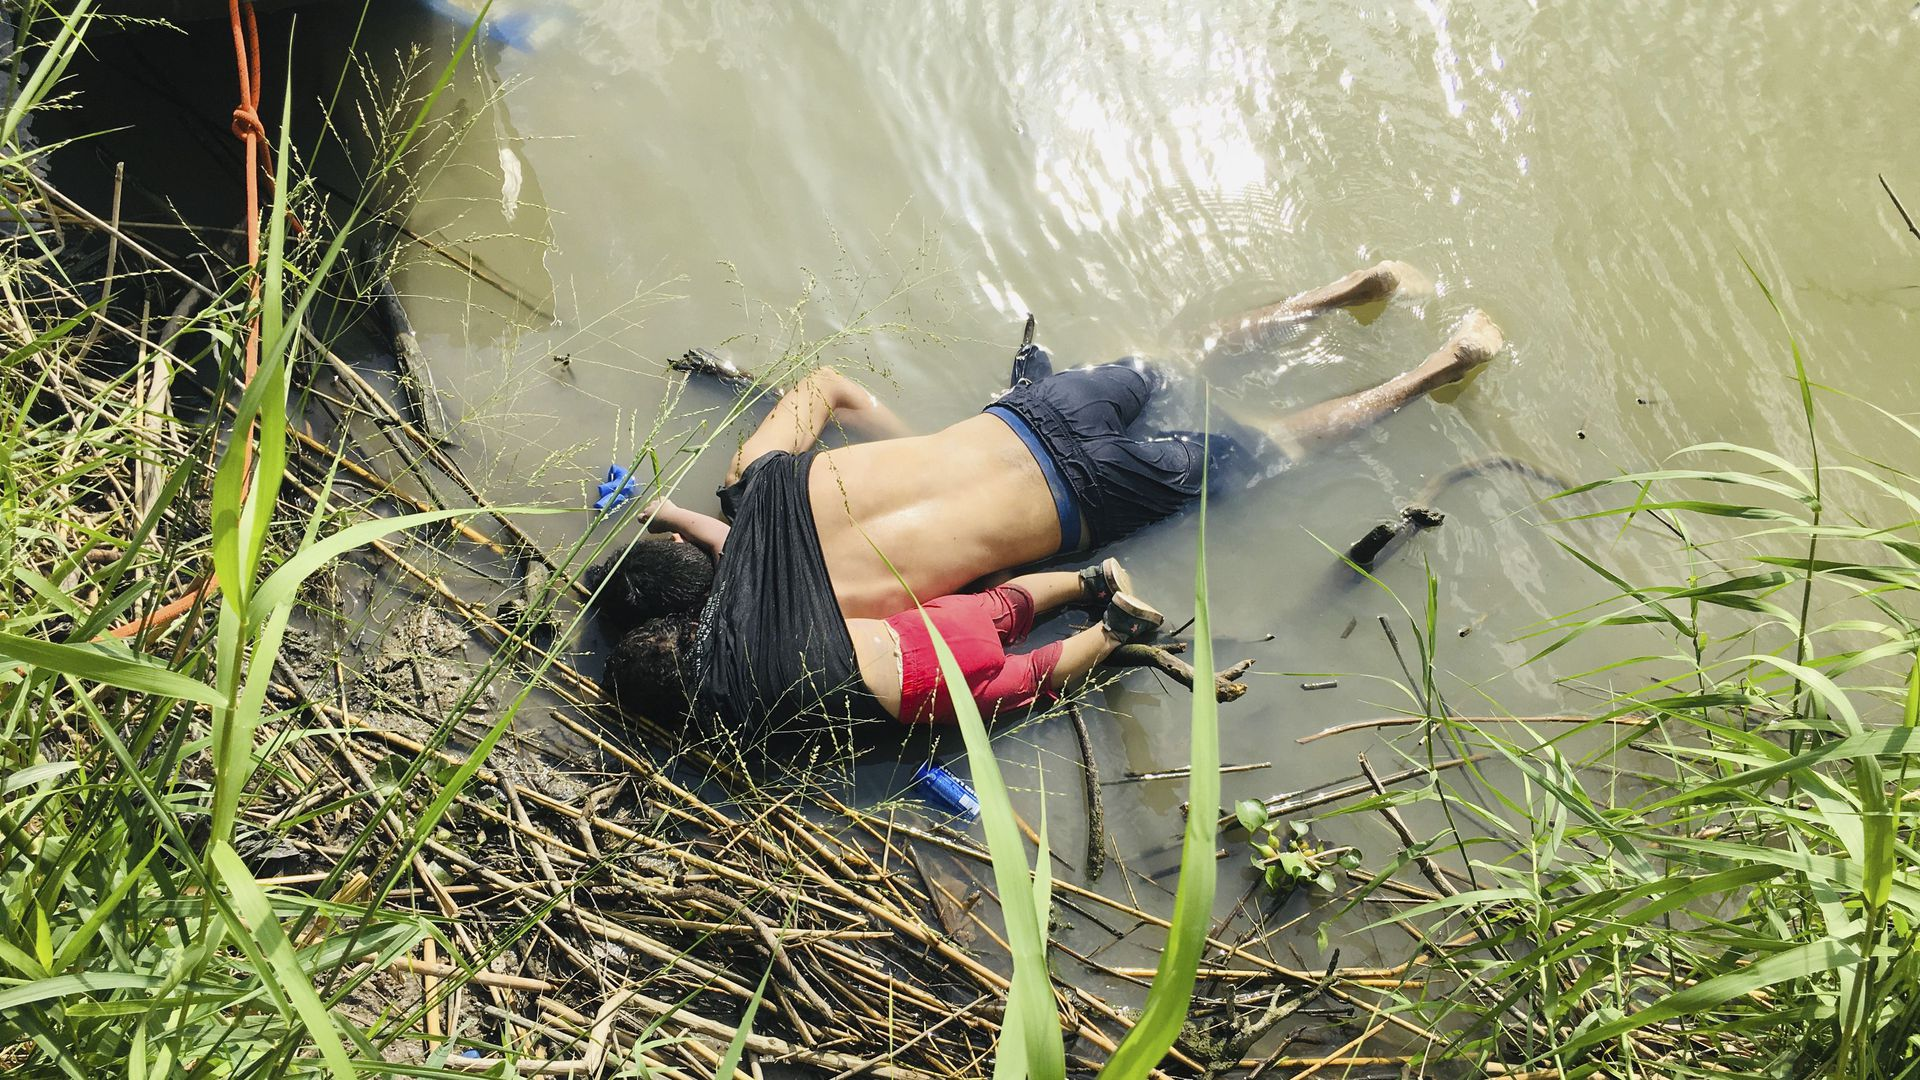 A father and his daughter drowned trying to migrate to the U.S.